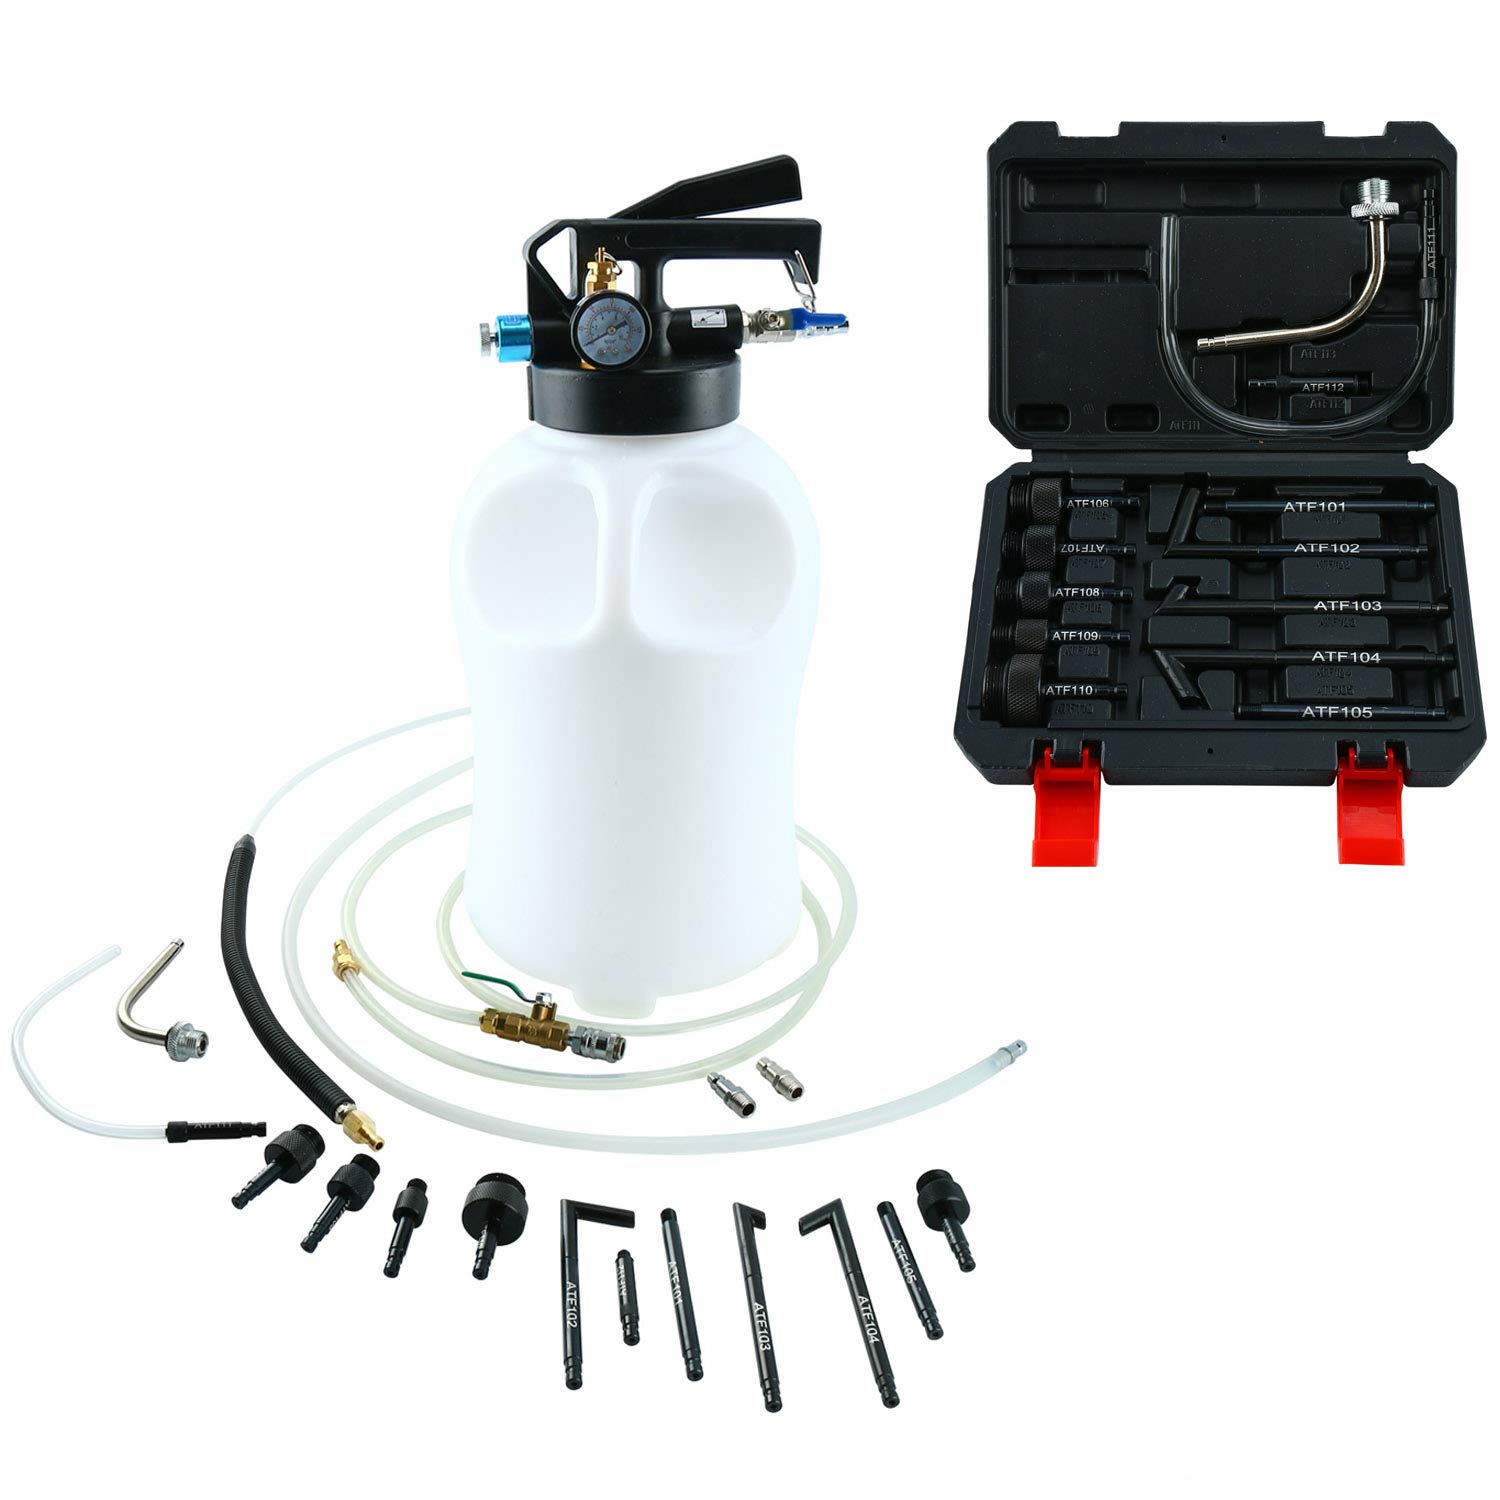 10 Liter Pneumatic ATF Oil and Liquid Extractor + 14 pcs ATF Adapters/Refill System Kit freebirdtrading